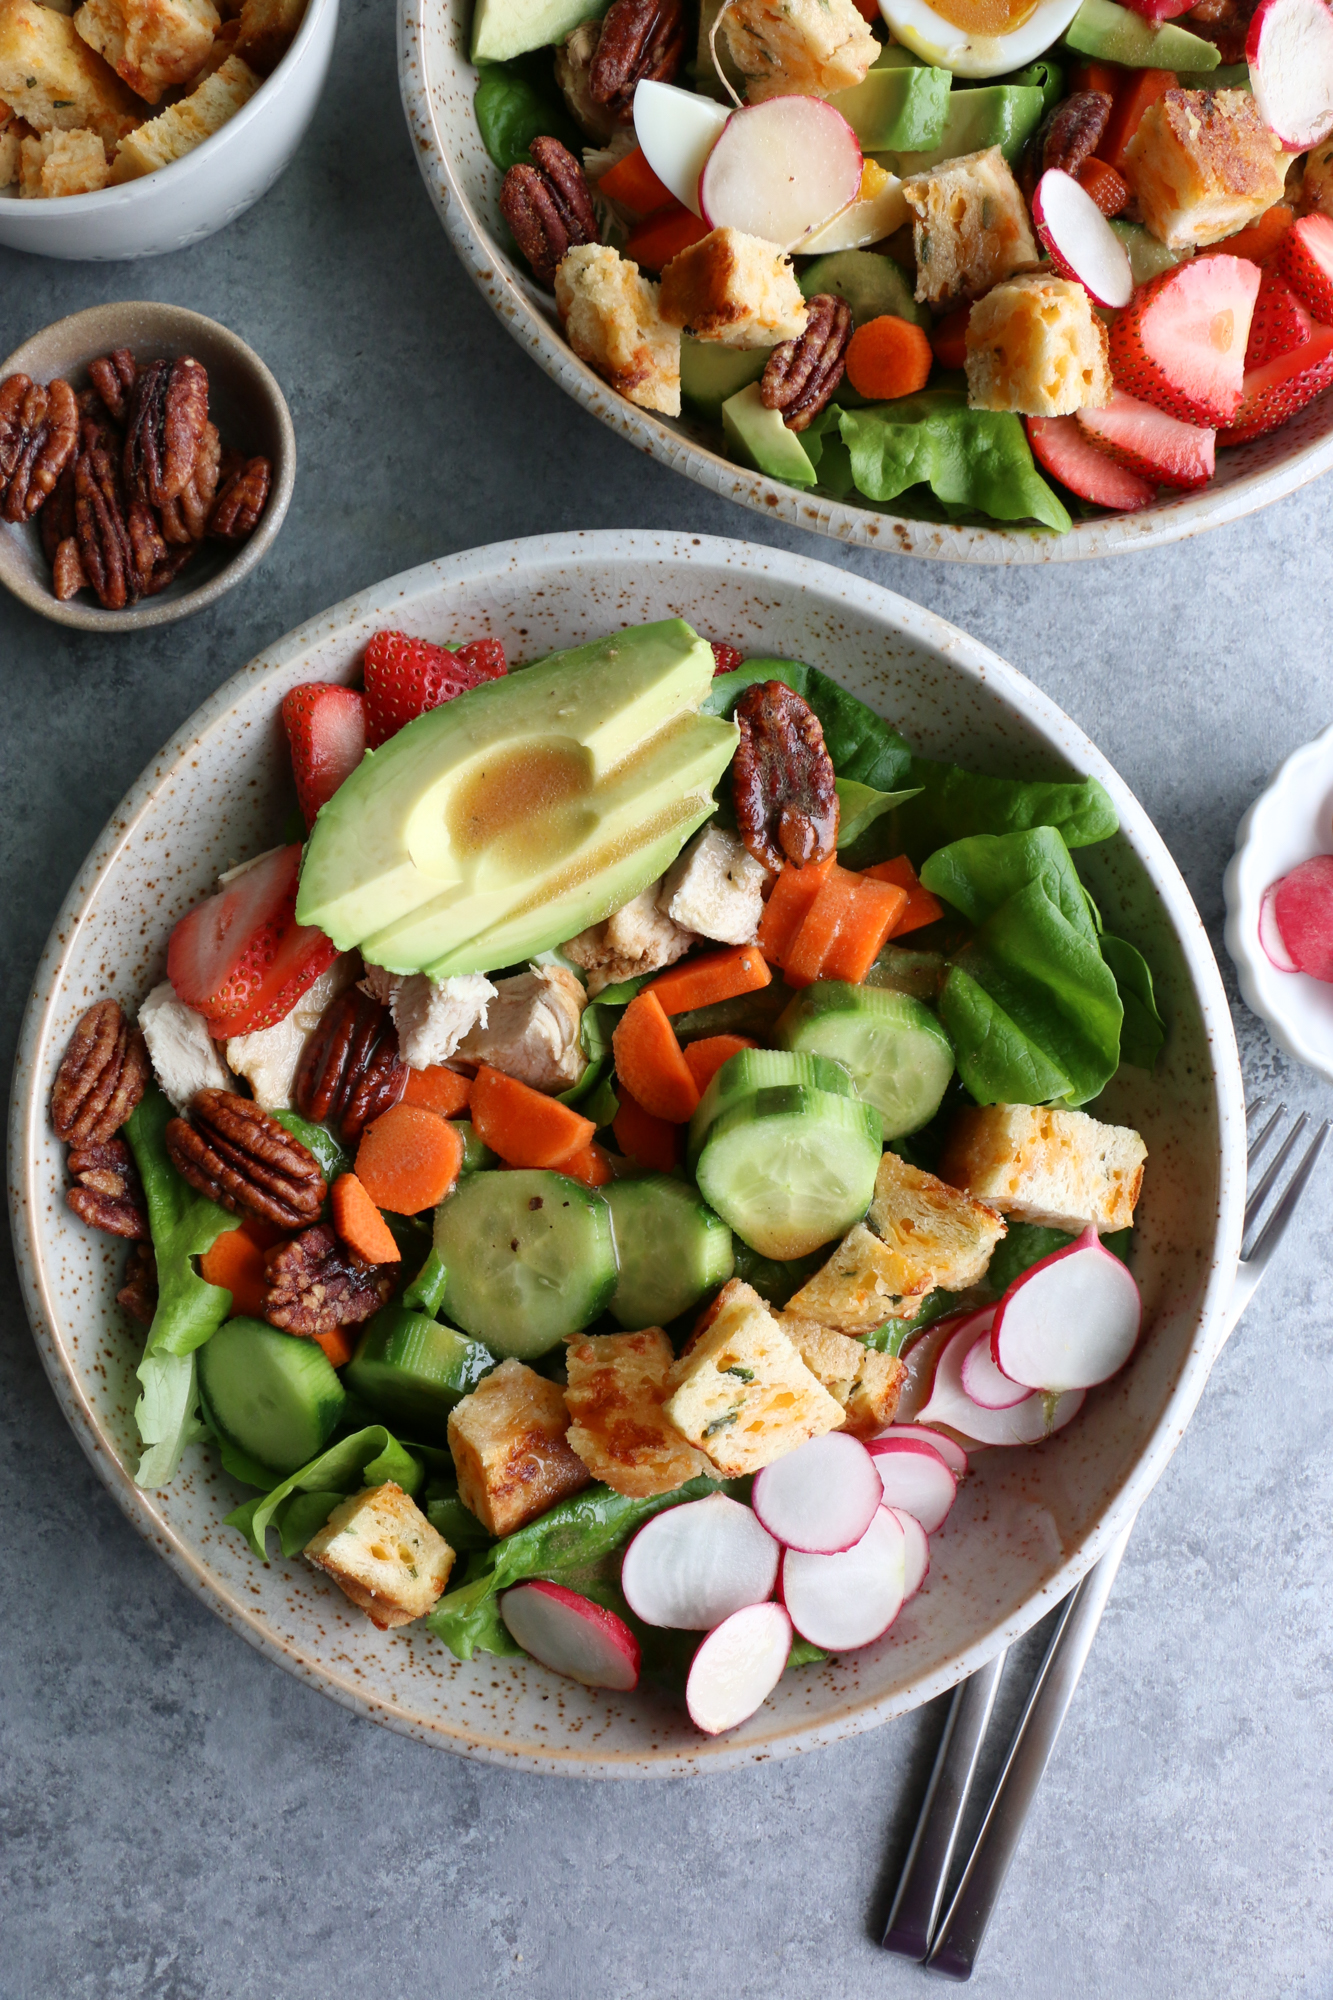 salad with biscuit croutons